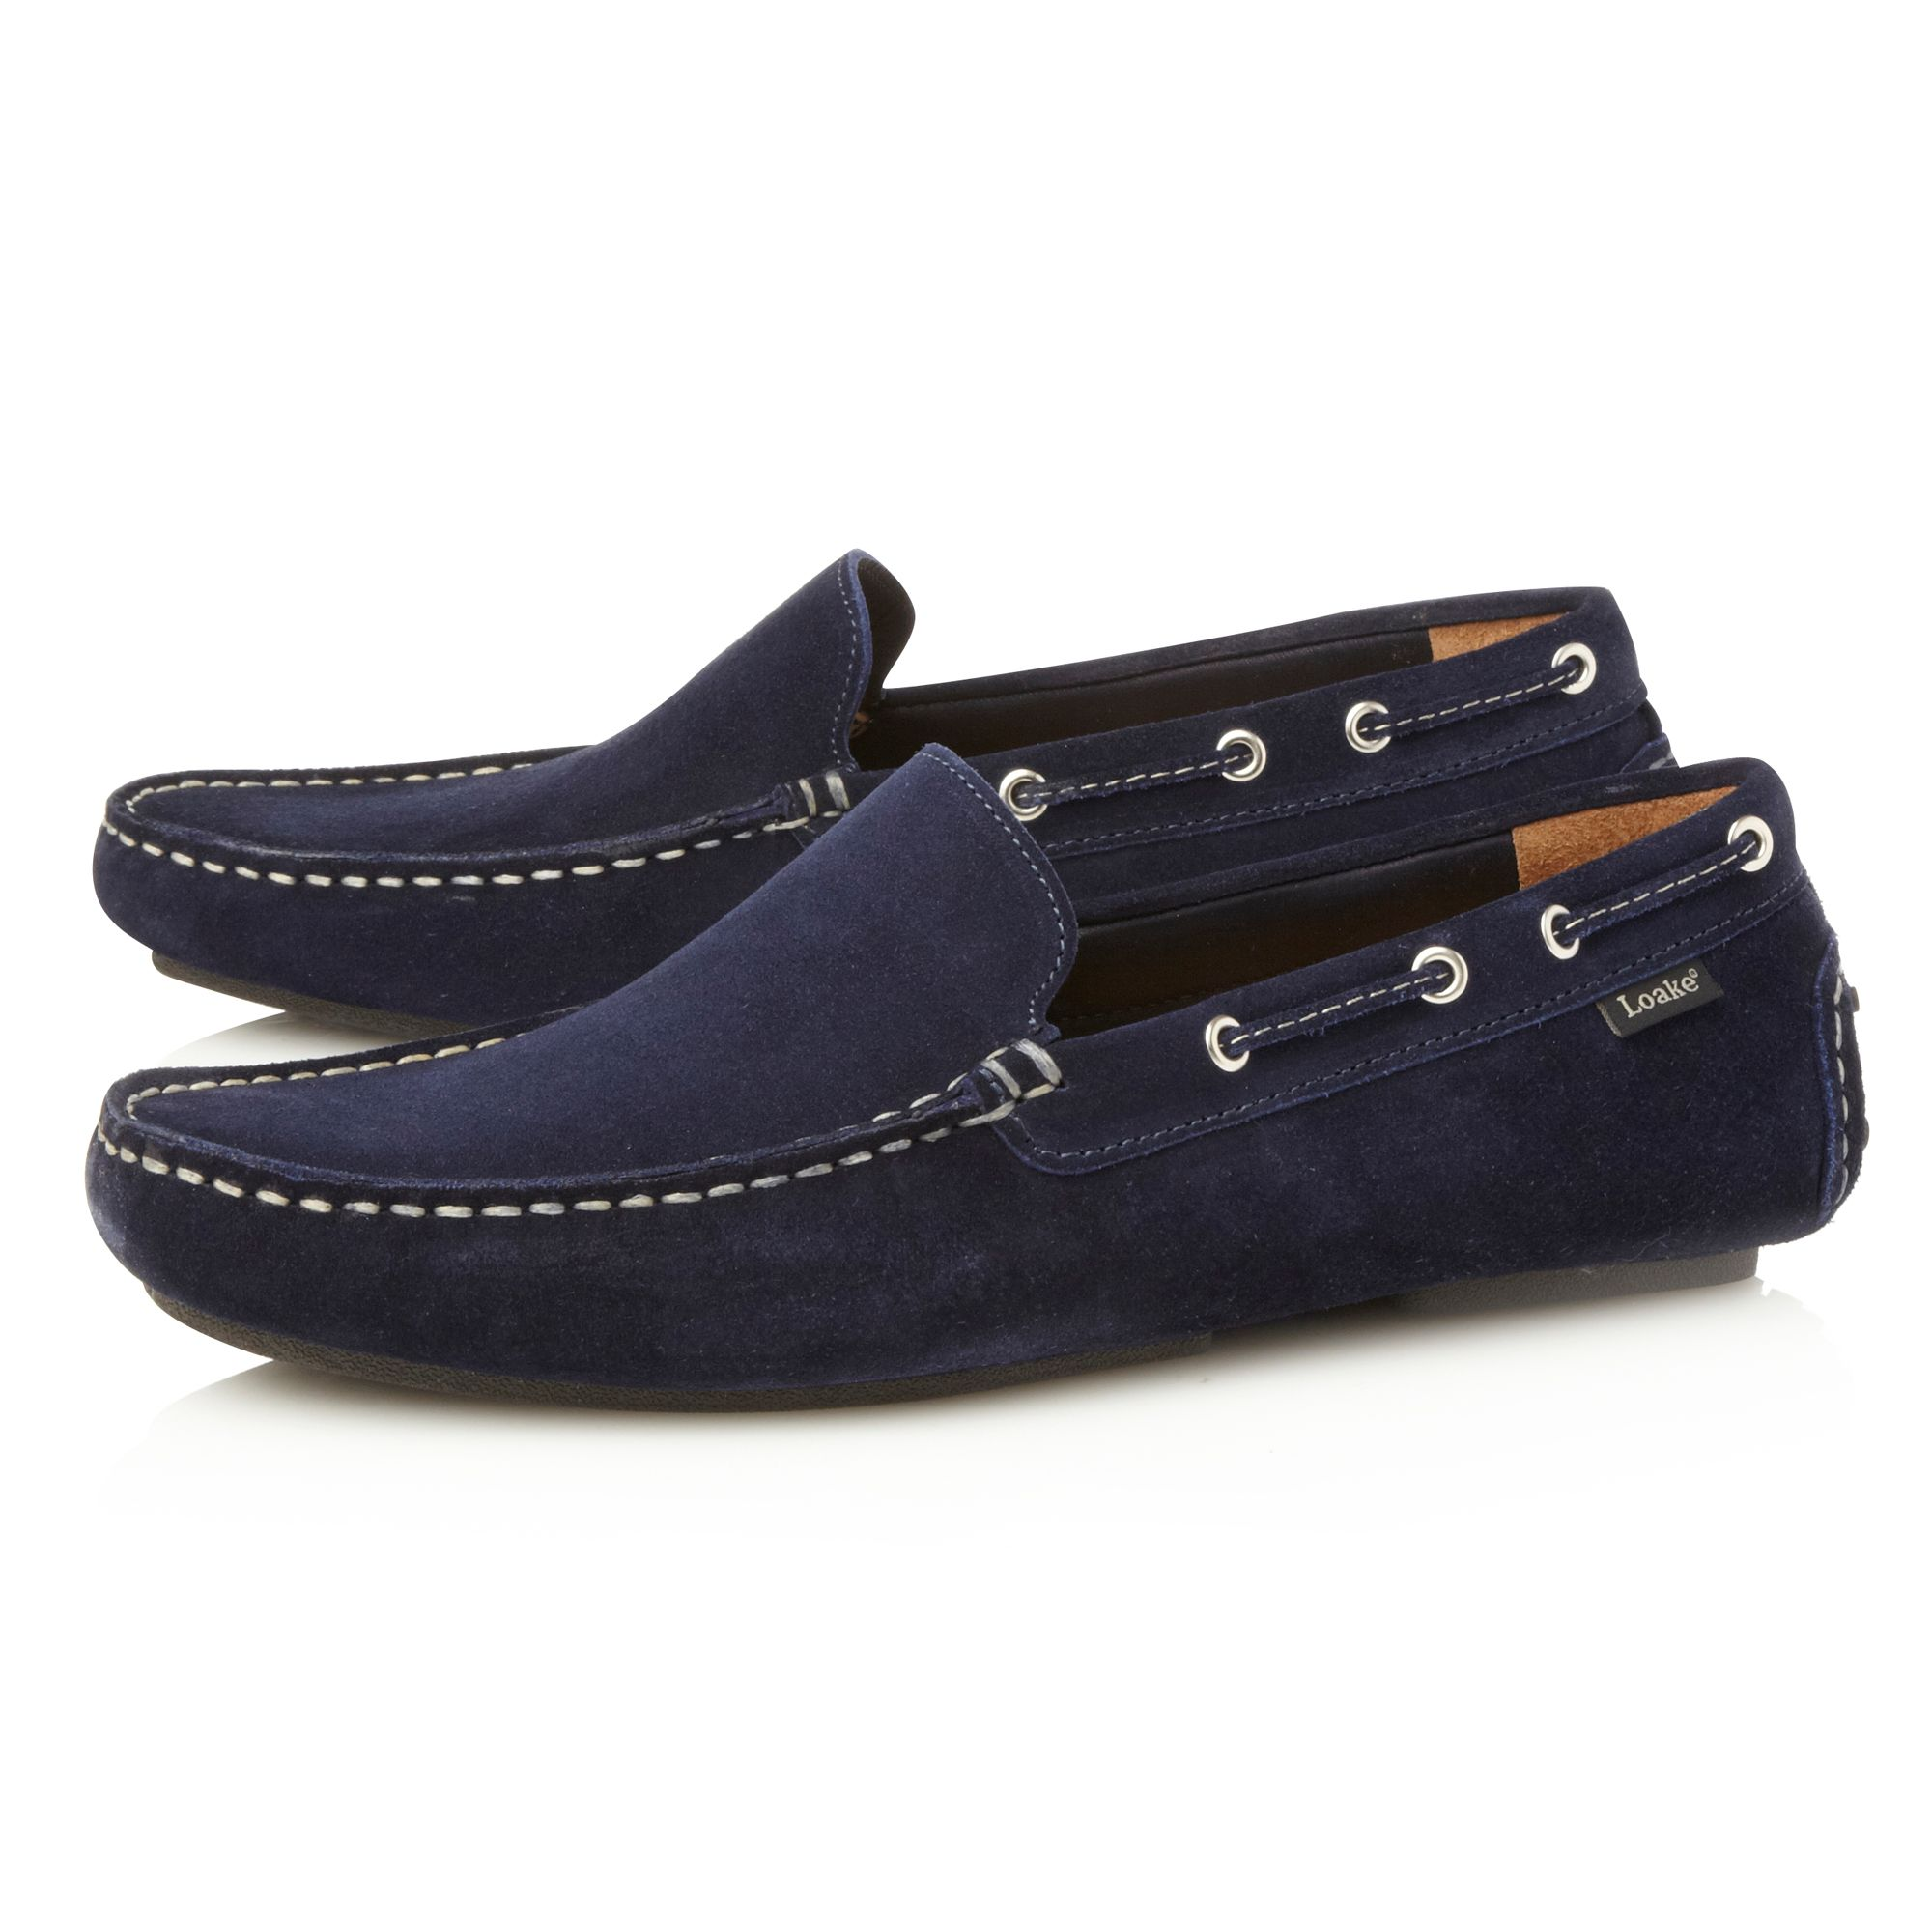 Sperry Driver Shoes Men